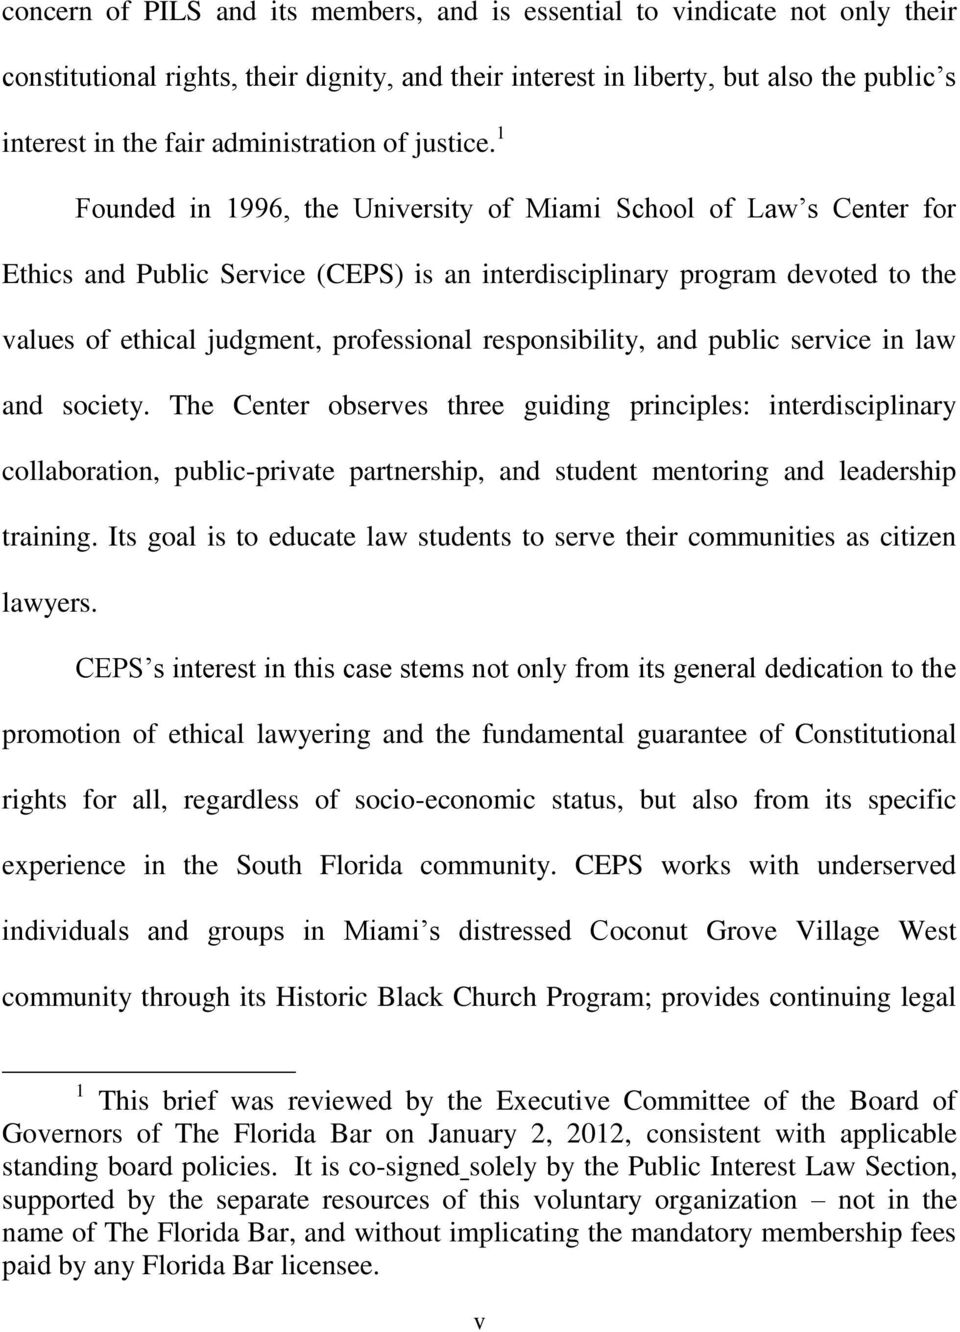 1 Founded in 1996, the University of Miami School of Law s Center for Ethics and Public Service (CEPS) is an interdisciplinary program devoted to the values of ethical judgment, professional